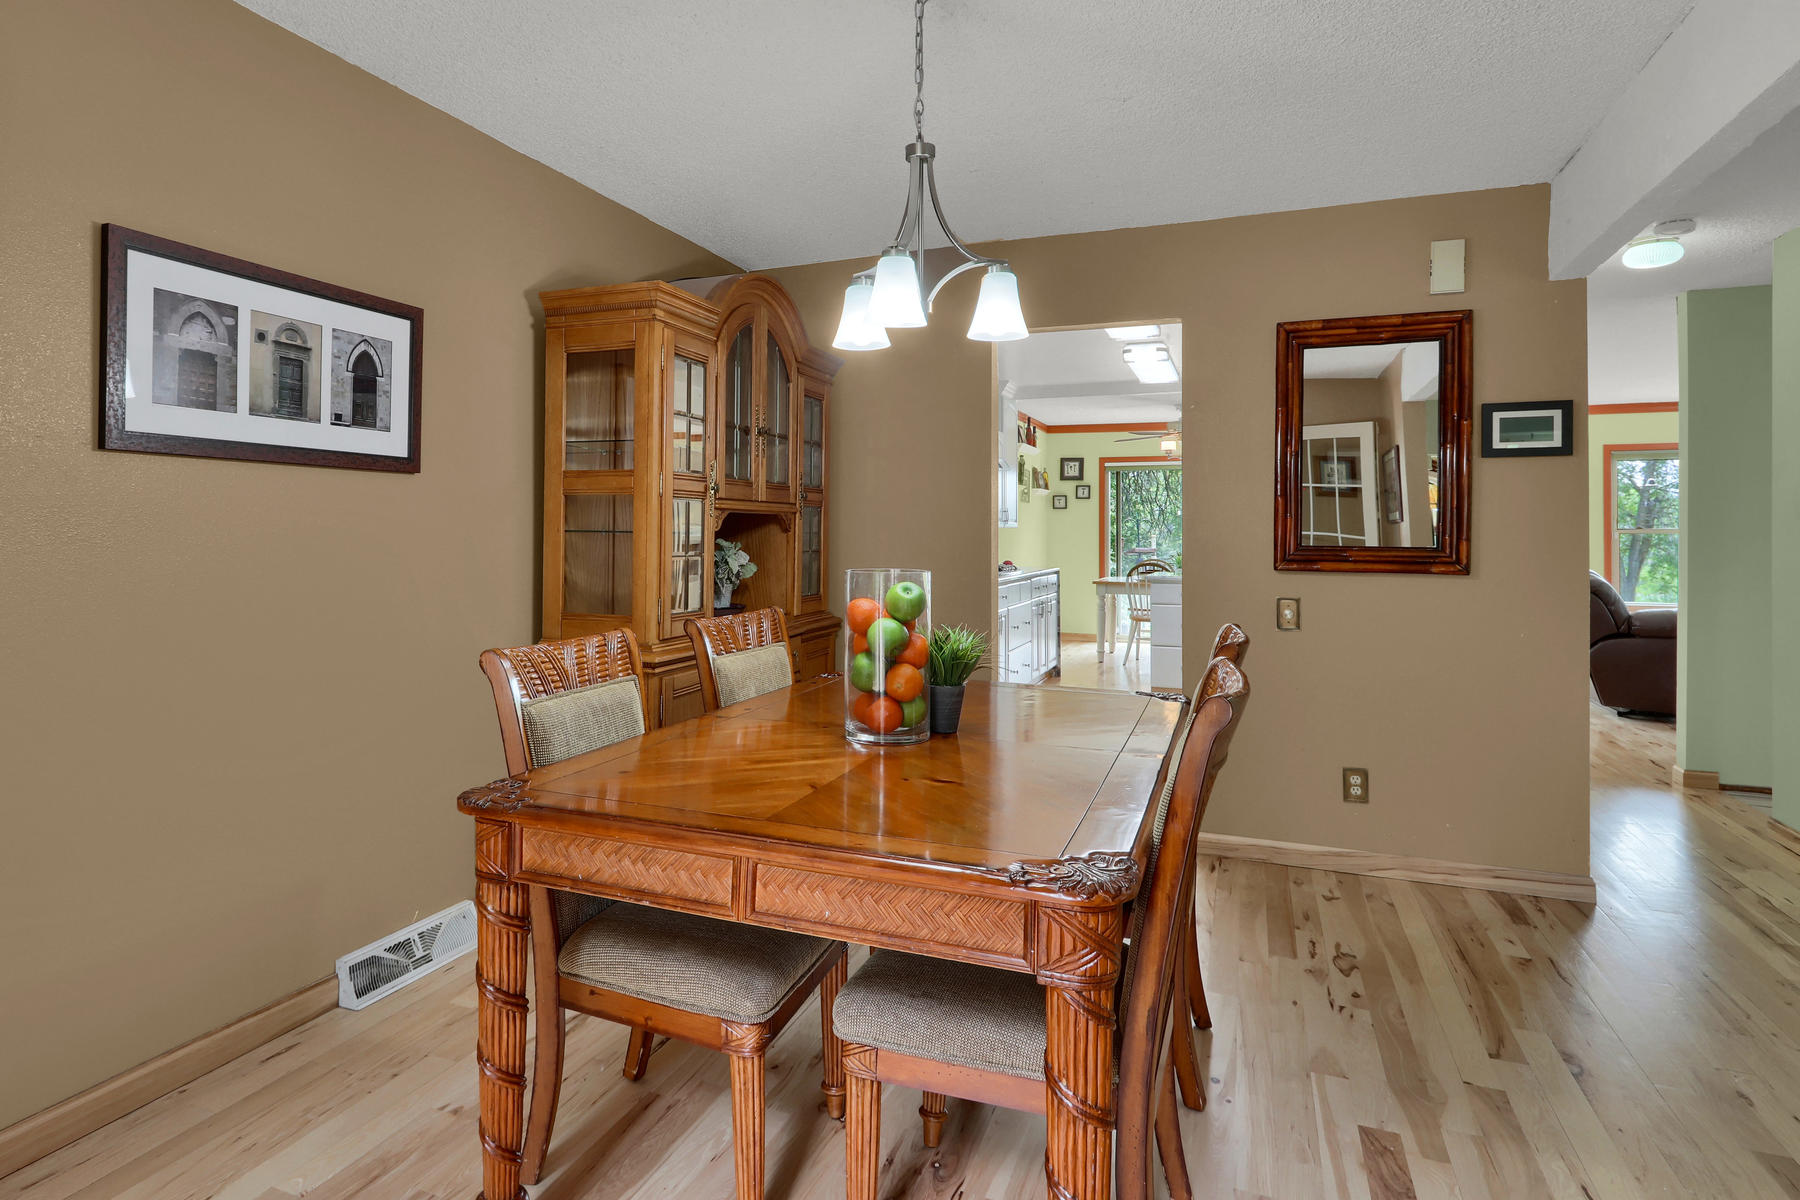 8490 Independence Way Arvada-005-010-Dining Room-MLS_Size.jpg